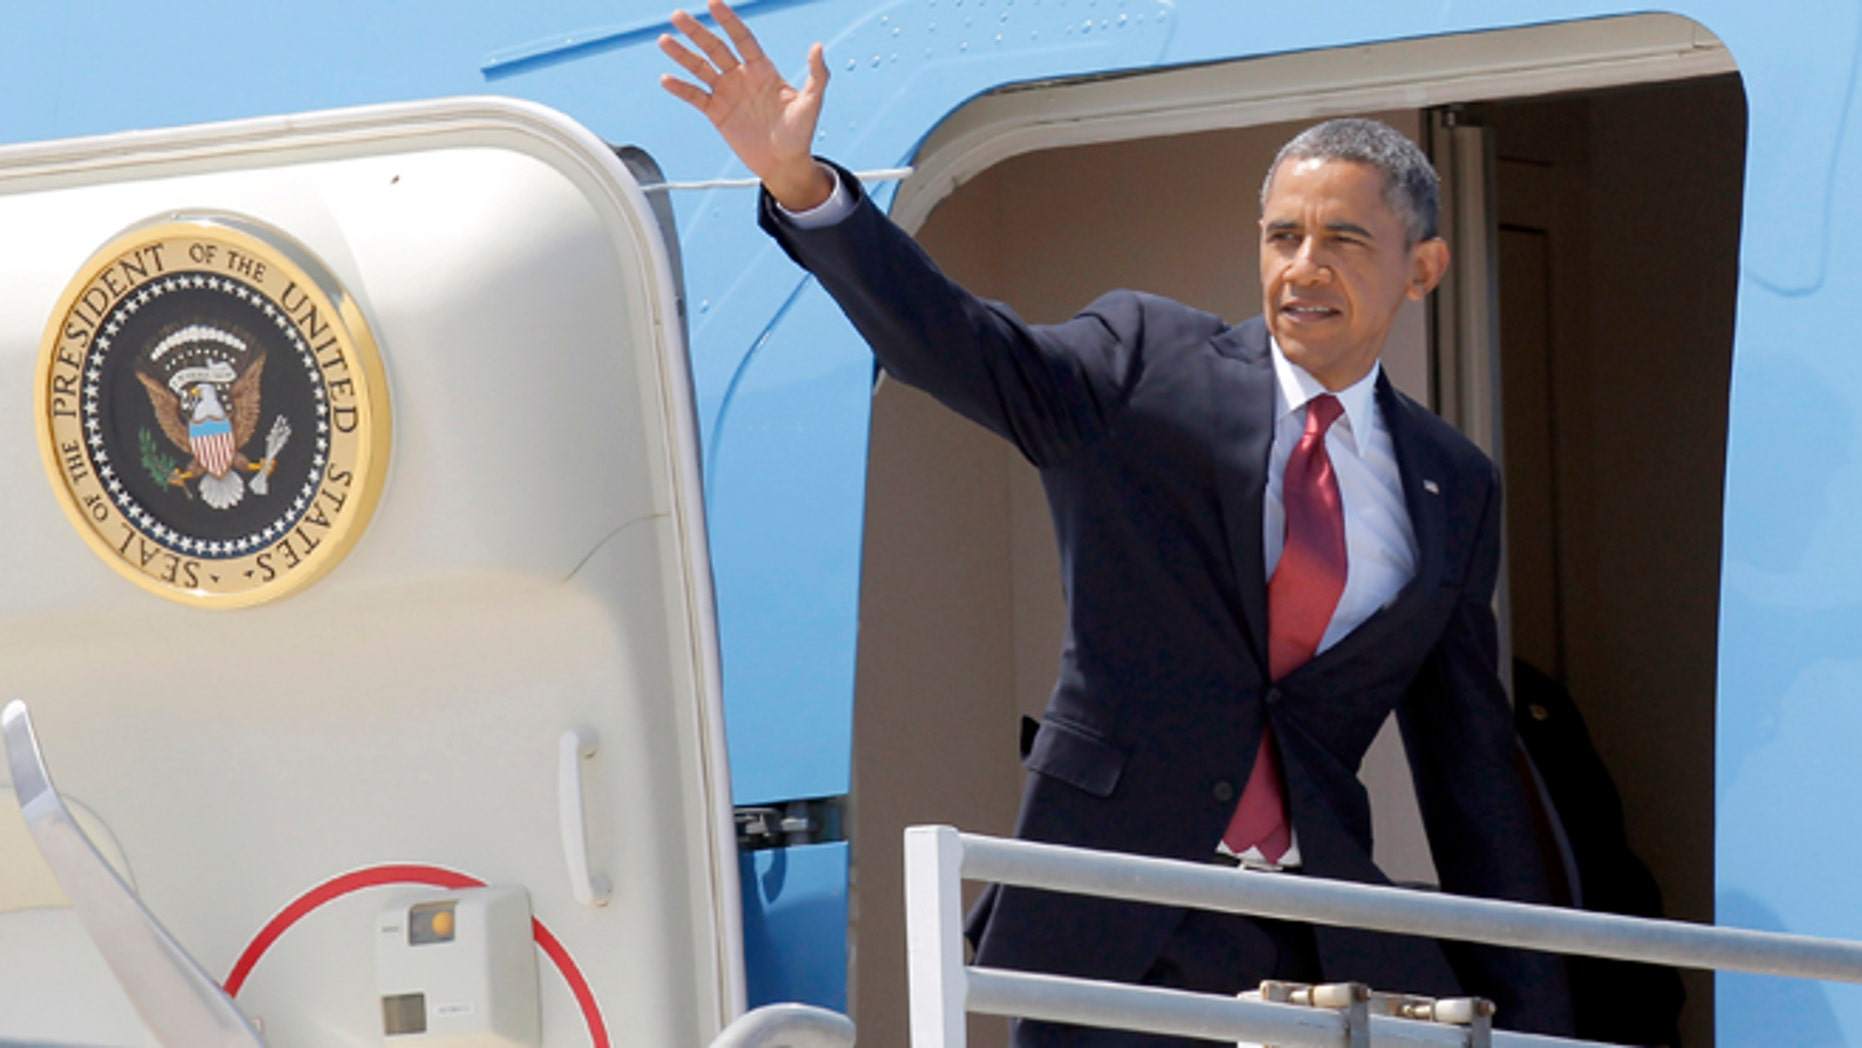 Aug 7, 2013: President Barack Obama waves from the door of Air Force One for his return to Washington, after a two-day swing through Southern California, at Los Angeles International Airport.